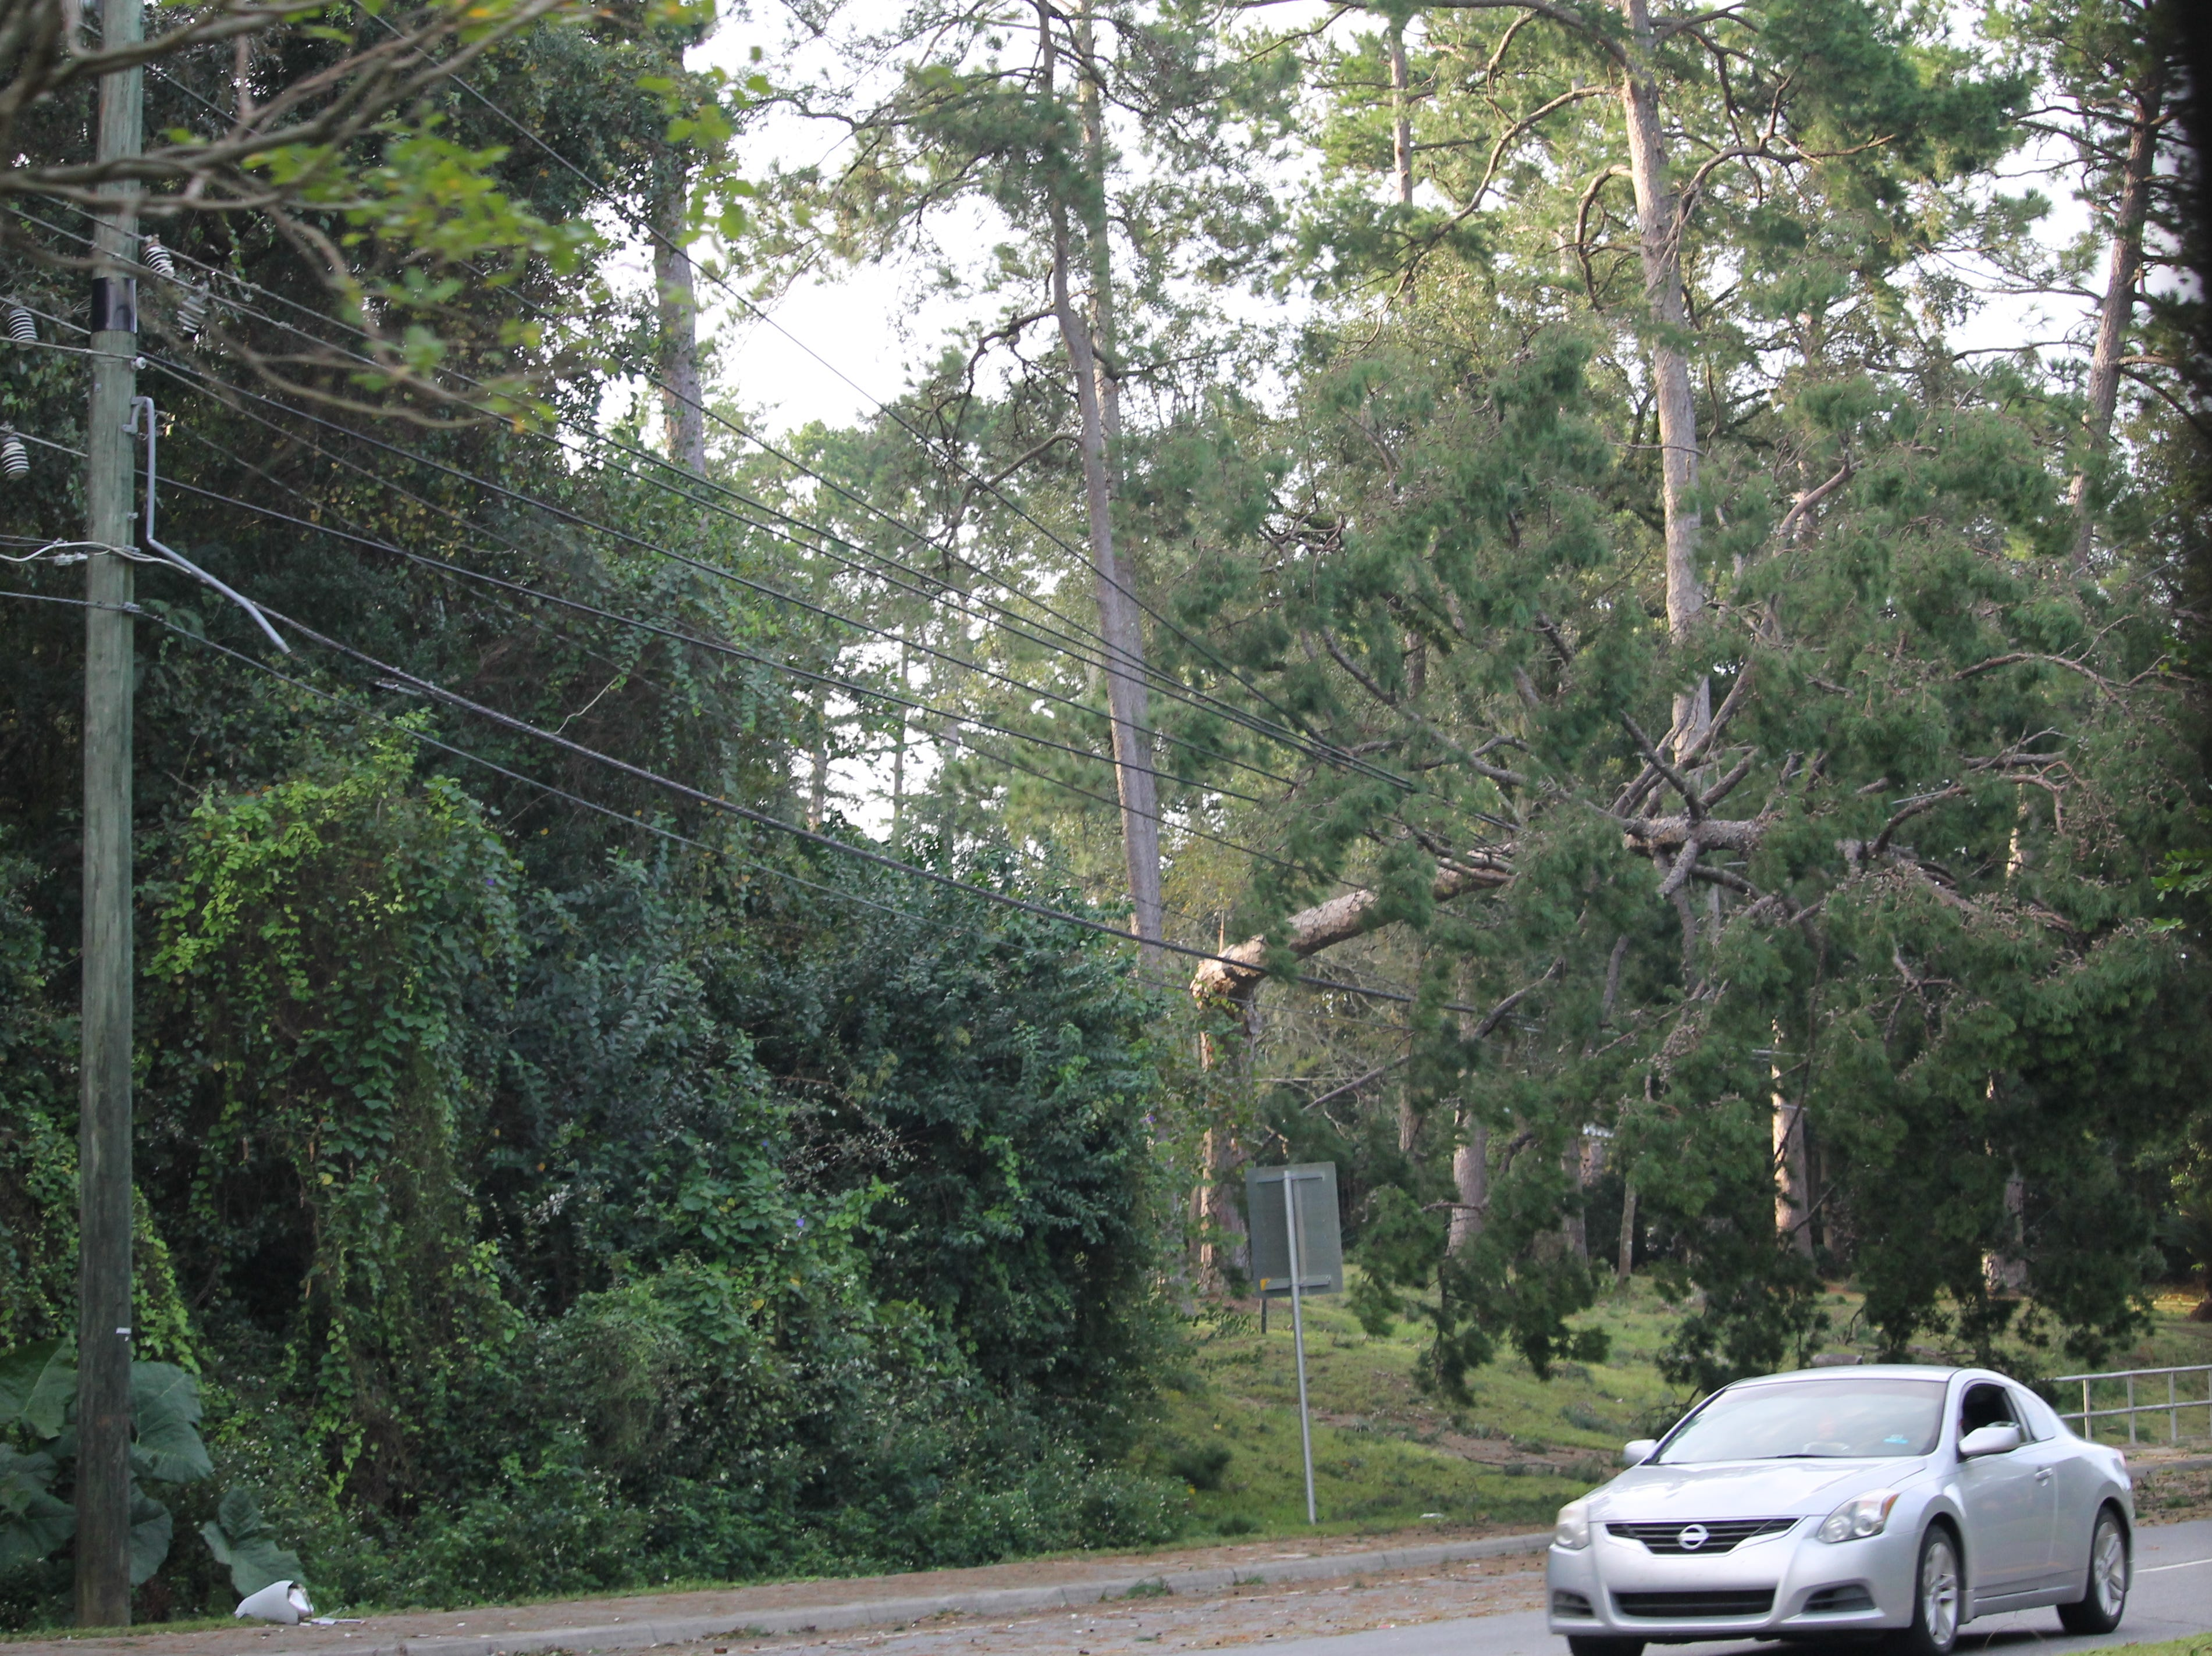 Downed tree being held up by power lines on Thomasville Rd. in Tallahassee.